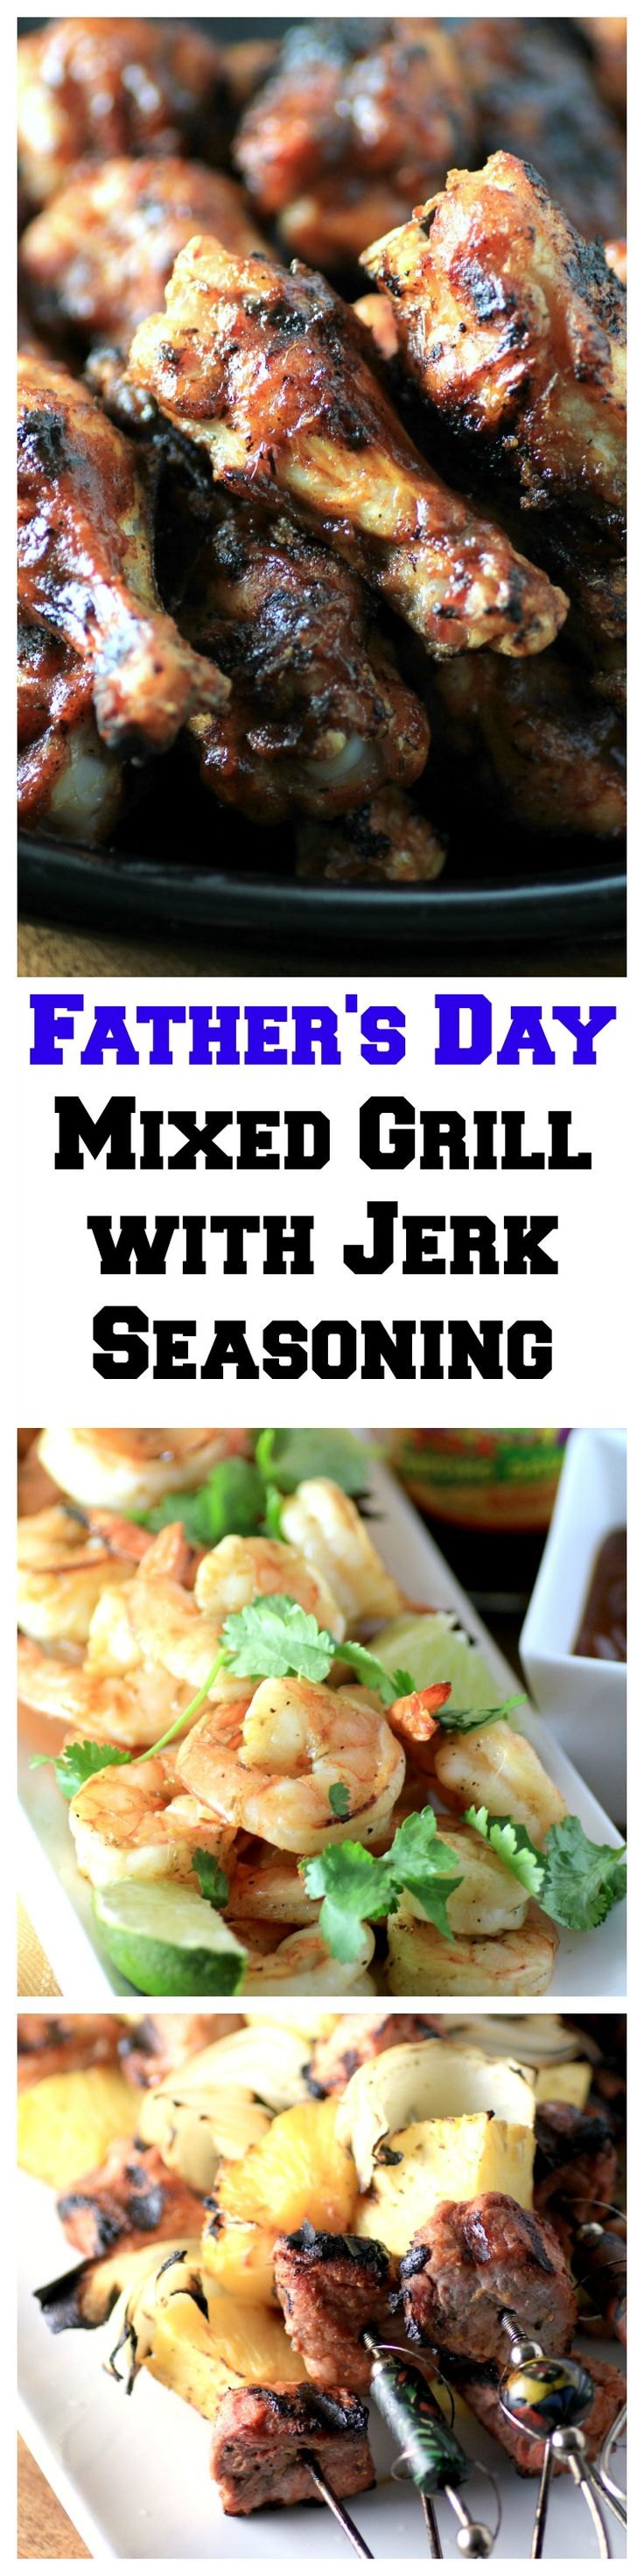 Mixed Grill #GrillWithGrace for Father's Day, make dad happy!!